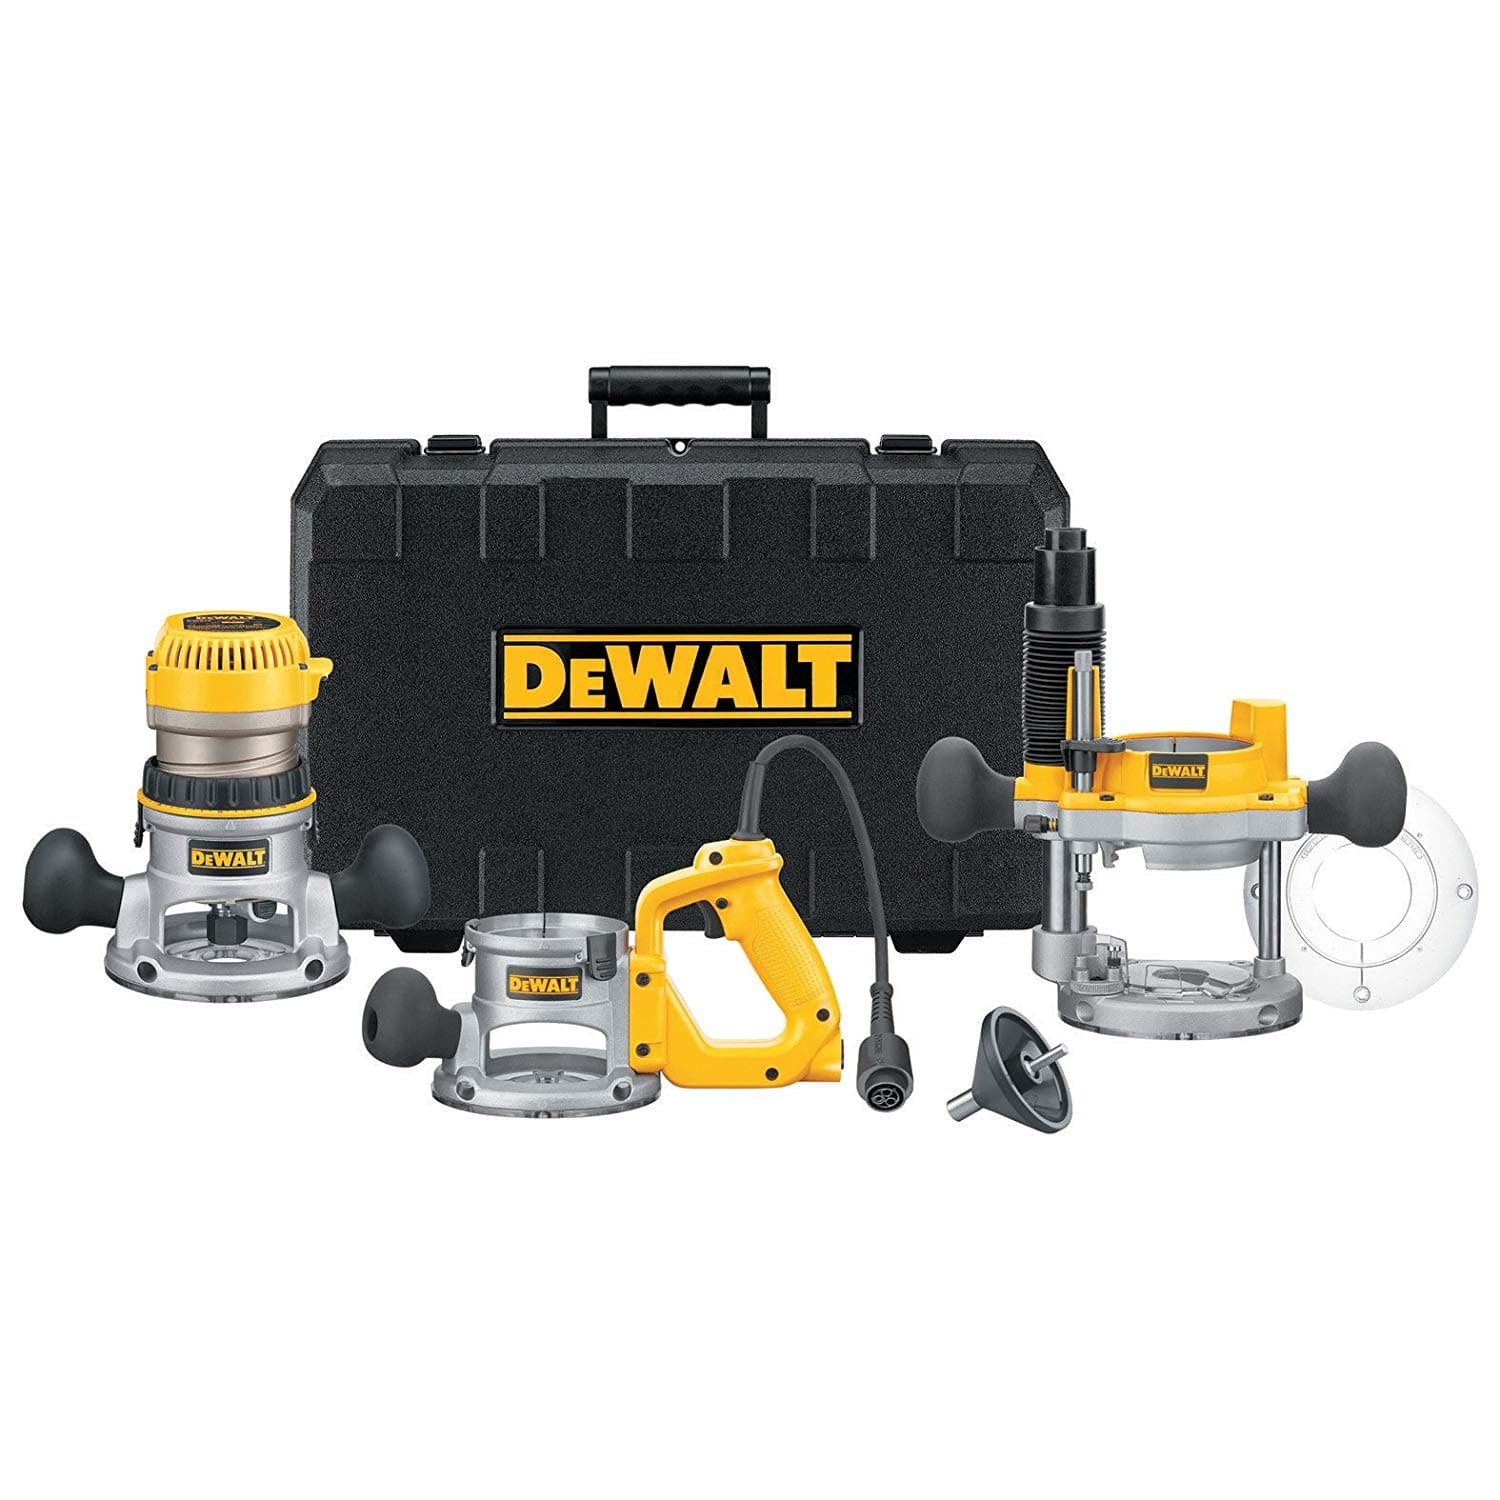 DEWALT DW618B3 12 Amp 2-1/4 Horsepower Plunge Base and Fixed Base Router $169.99 at Ratuken through CPO Outlets w/ F/S